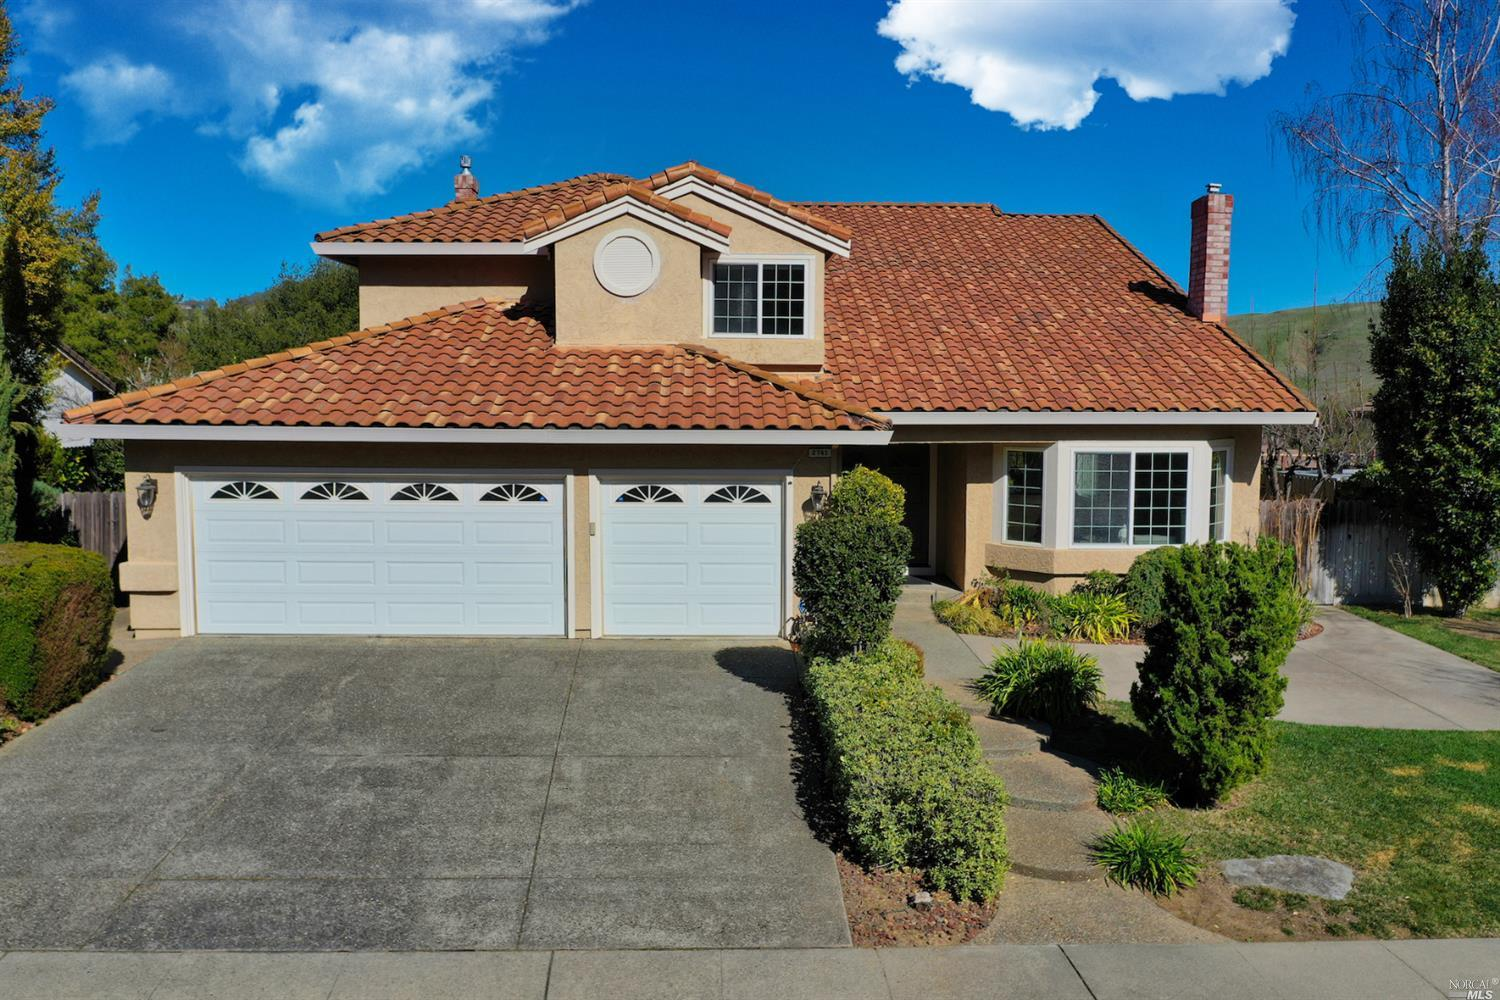 Lovely updated home in gated golf course community of Rancho Solano. Very private setting, no front